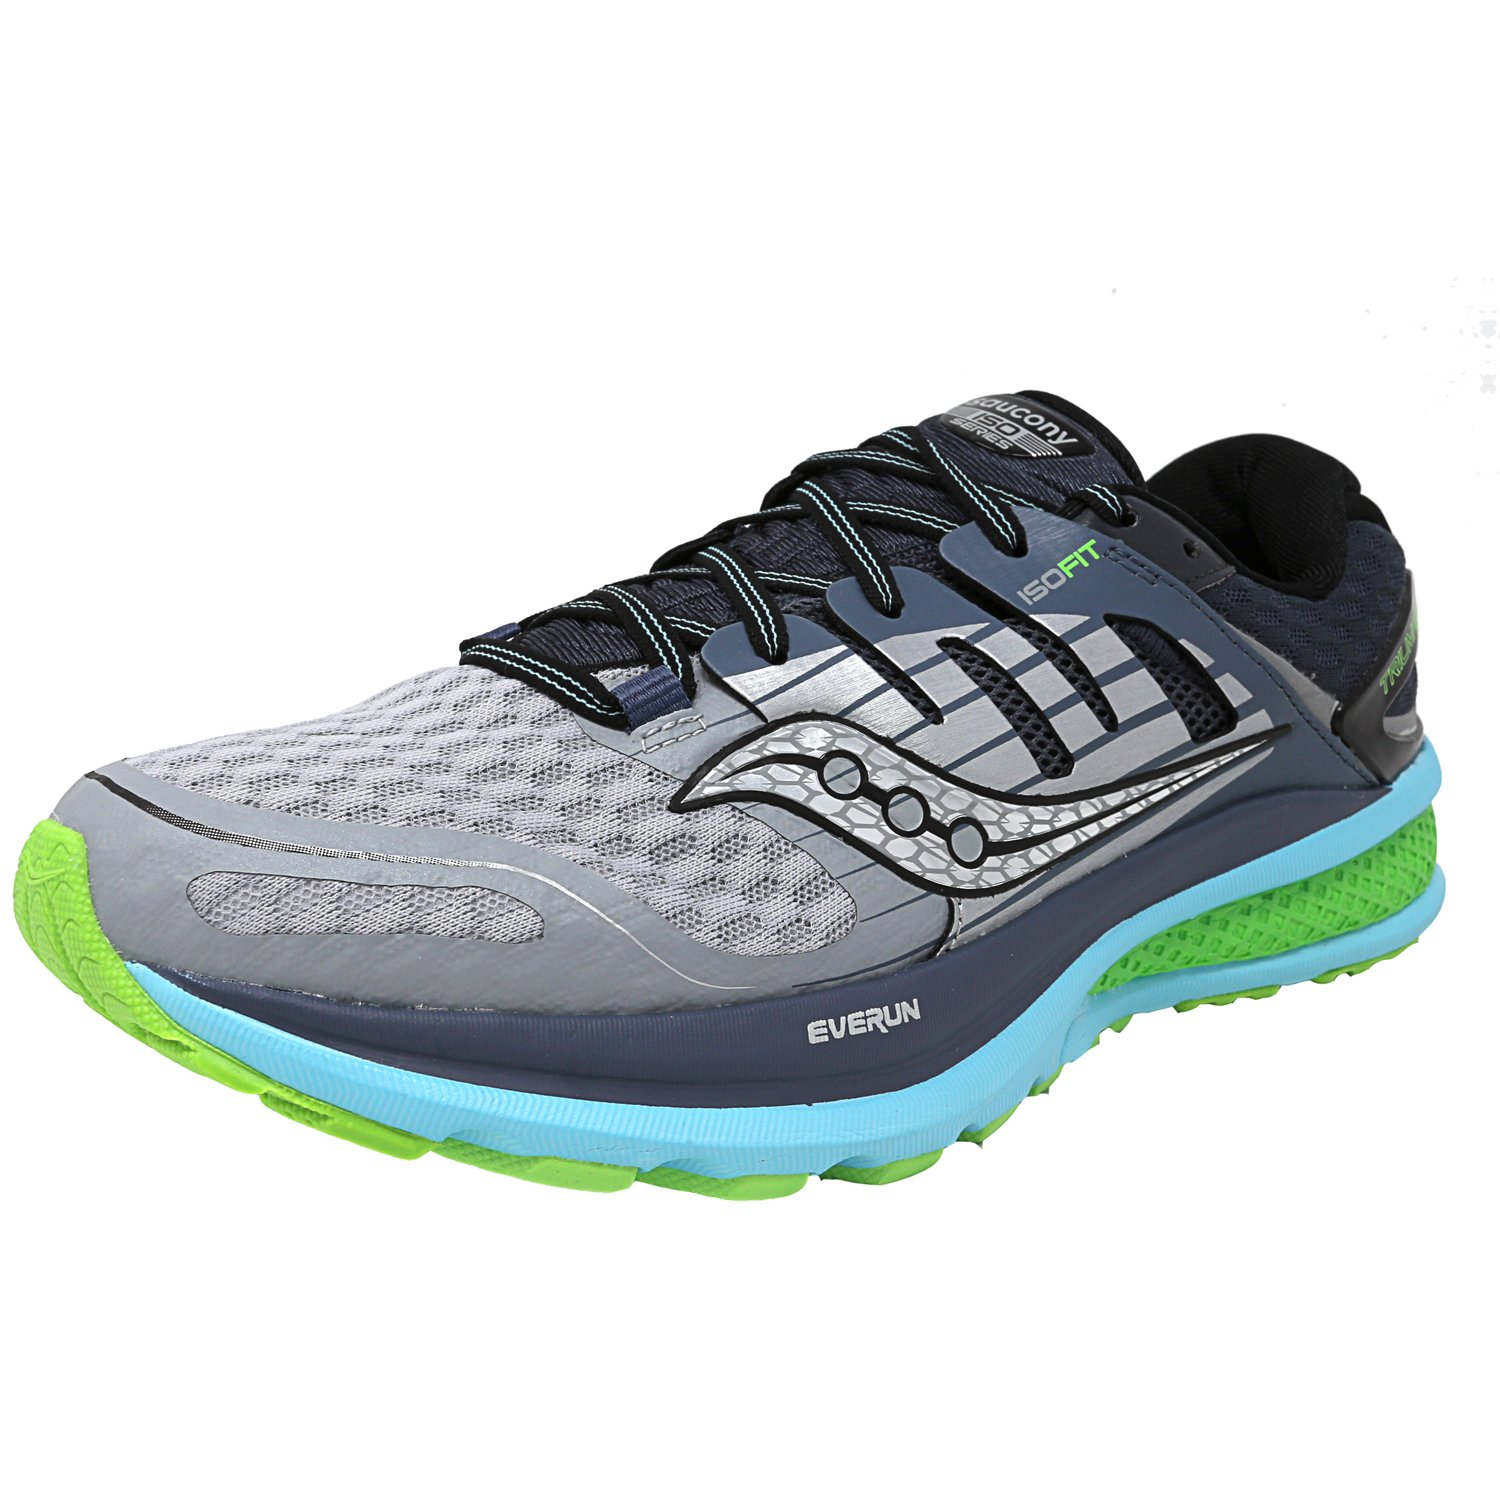 Saucony Women's Triumph Iso 2 Grey   Blue Slime Ankle-High Mesh Running Shoe 8.5M by Saucony